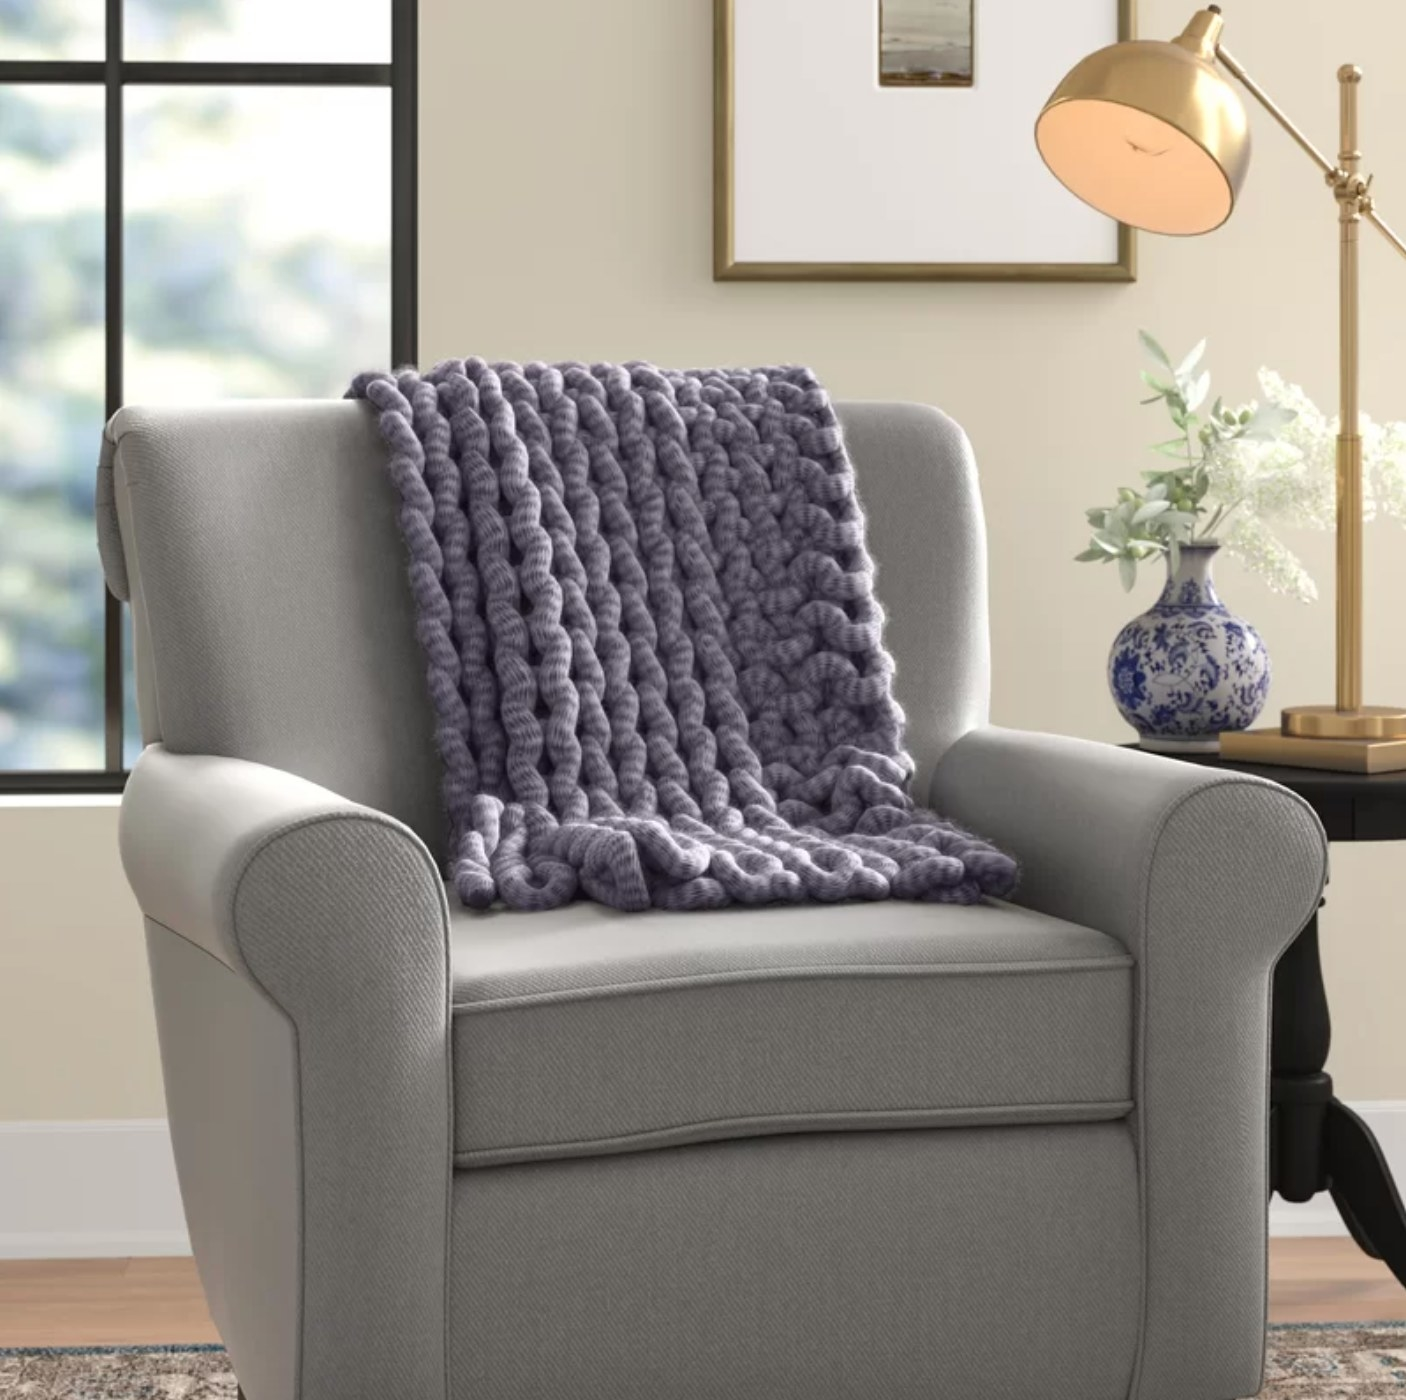 The knitted acrylic throw in indigo